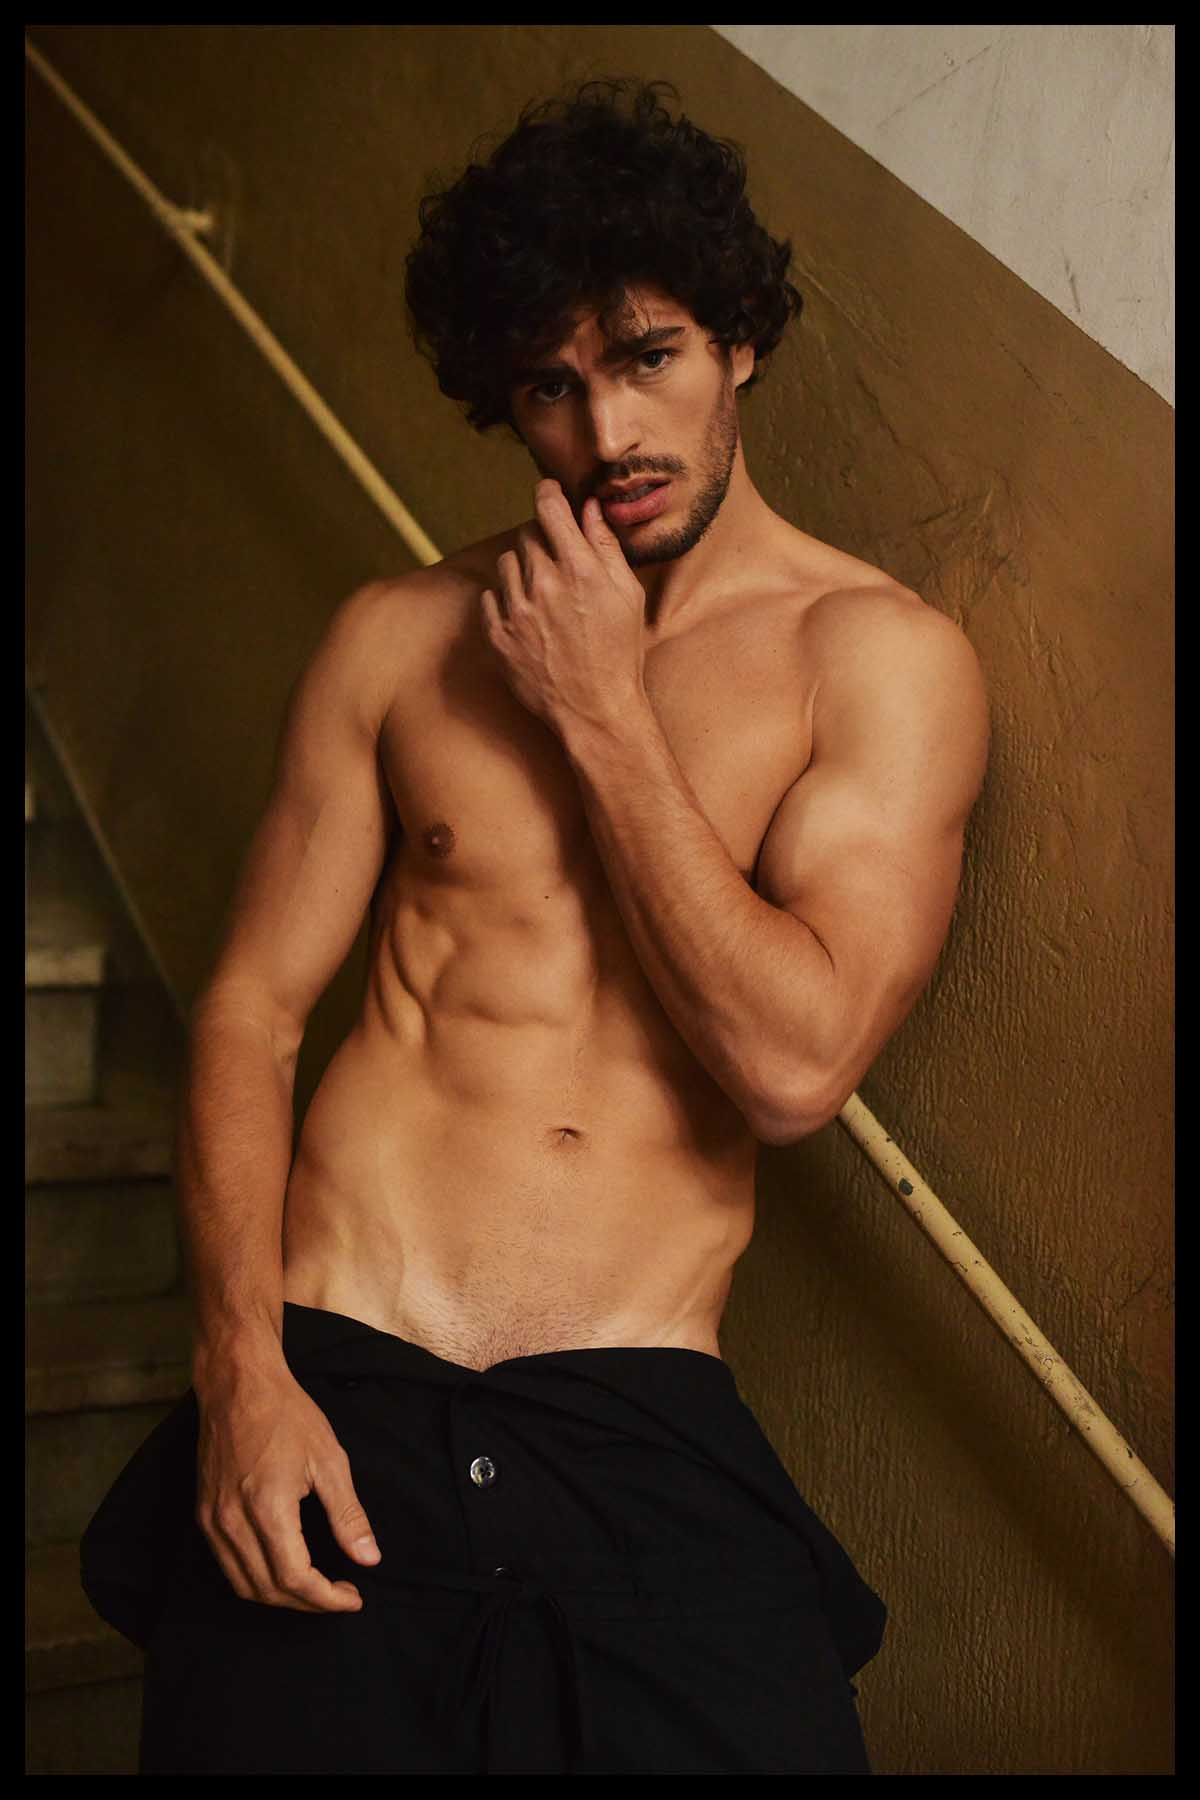 Dego Ferreira by Rodrigo Marconatto for Brazilian Male Model